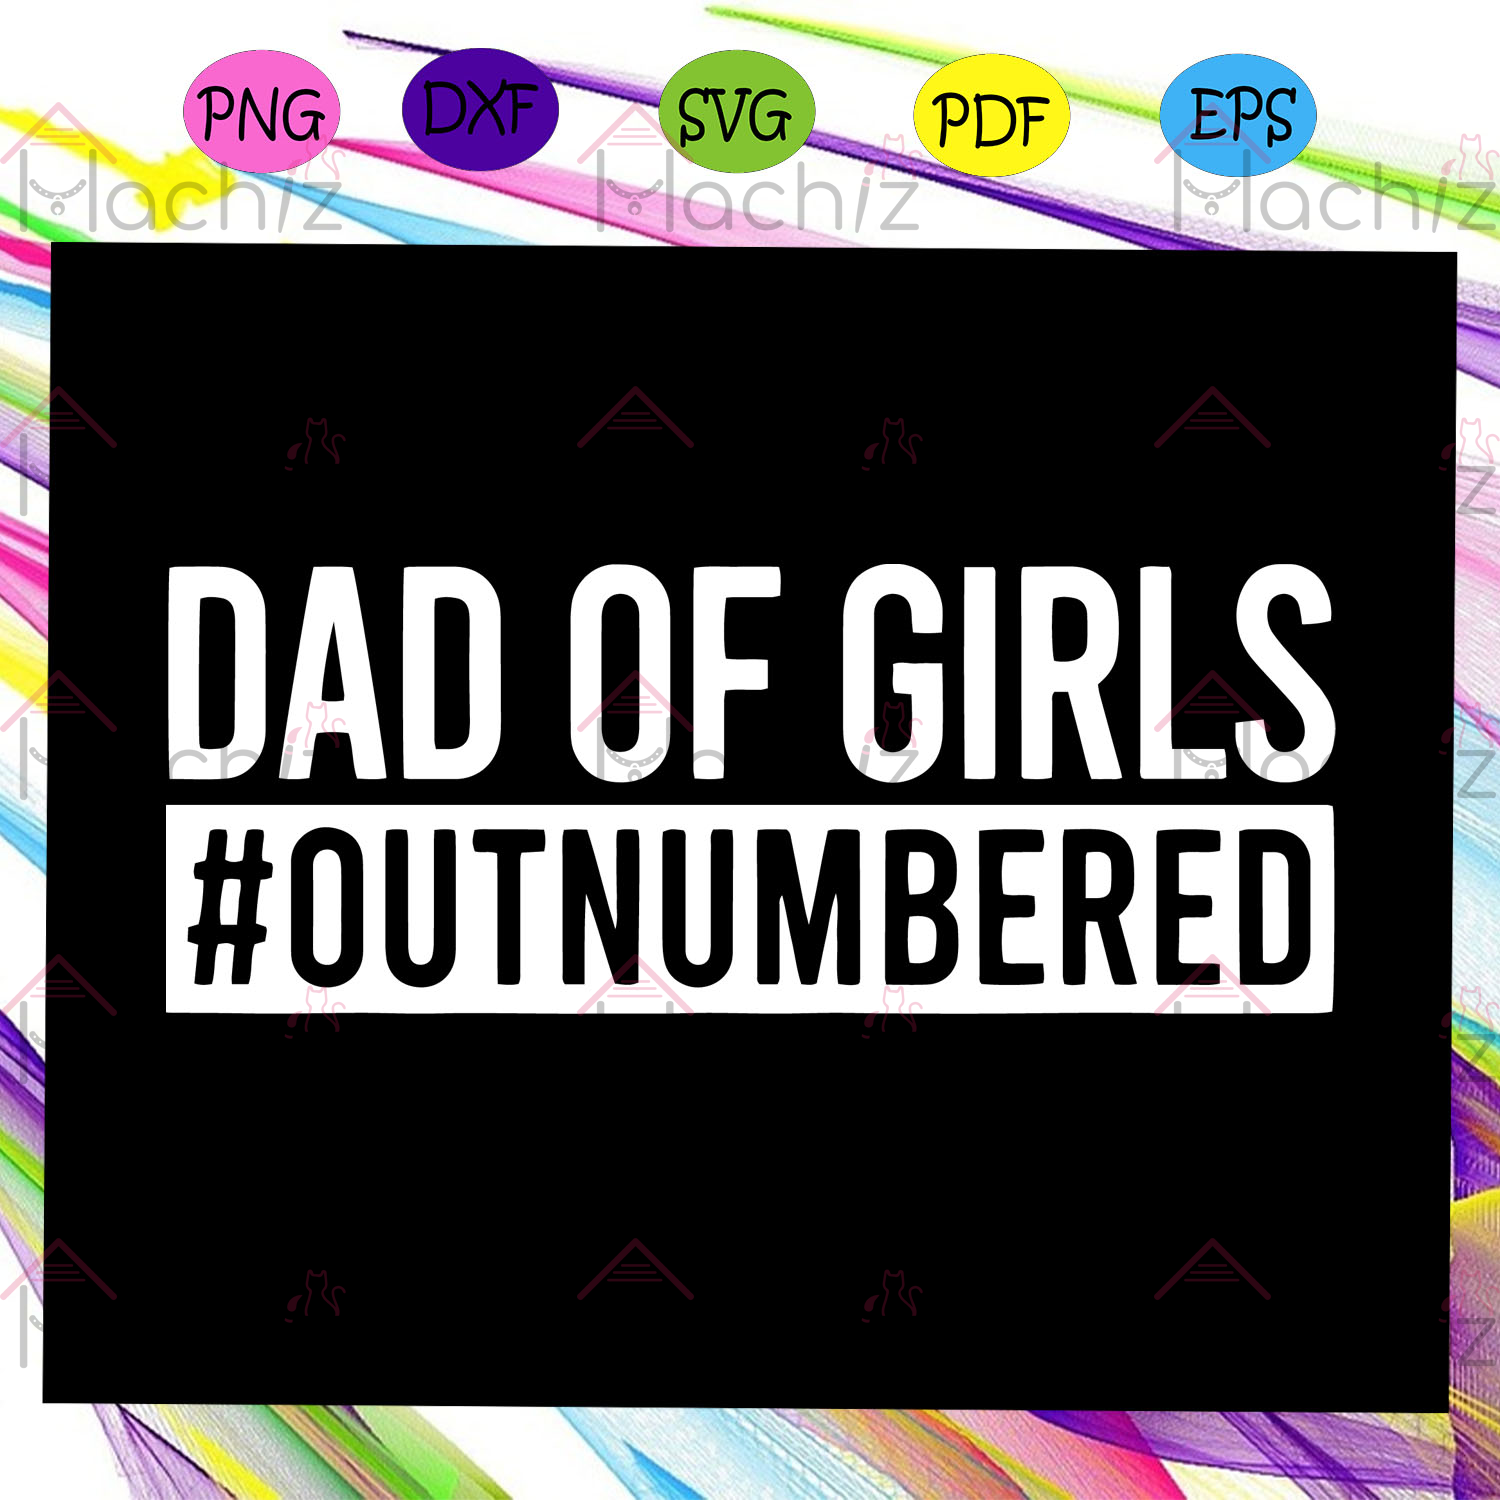 Dad Of Girls Outnumbered shirt , Dad Of Girls Svg, Fathers Day Svg, Fathers Day Gift, Dad Life Svg, Gift For Dad Svg, Gift For Papa Svg,Fathers Day Lover Svg, Files For Silhouette, Files For Cricut, SVG, DXF, EPS, PNG, Instant Download